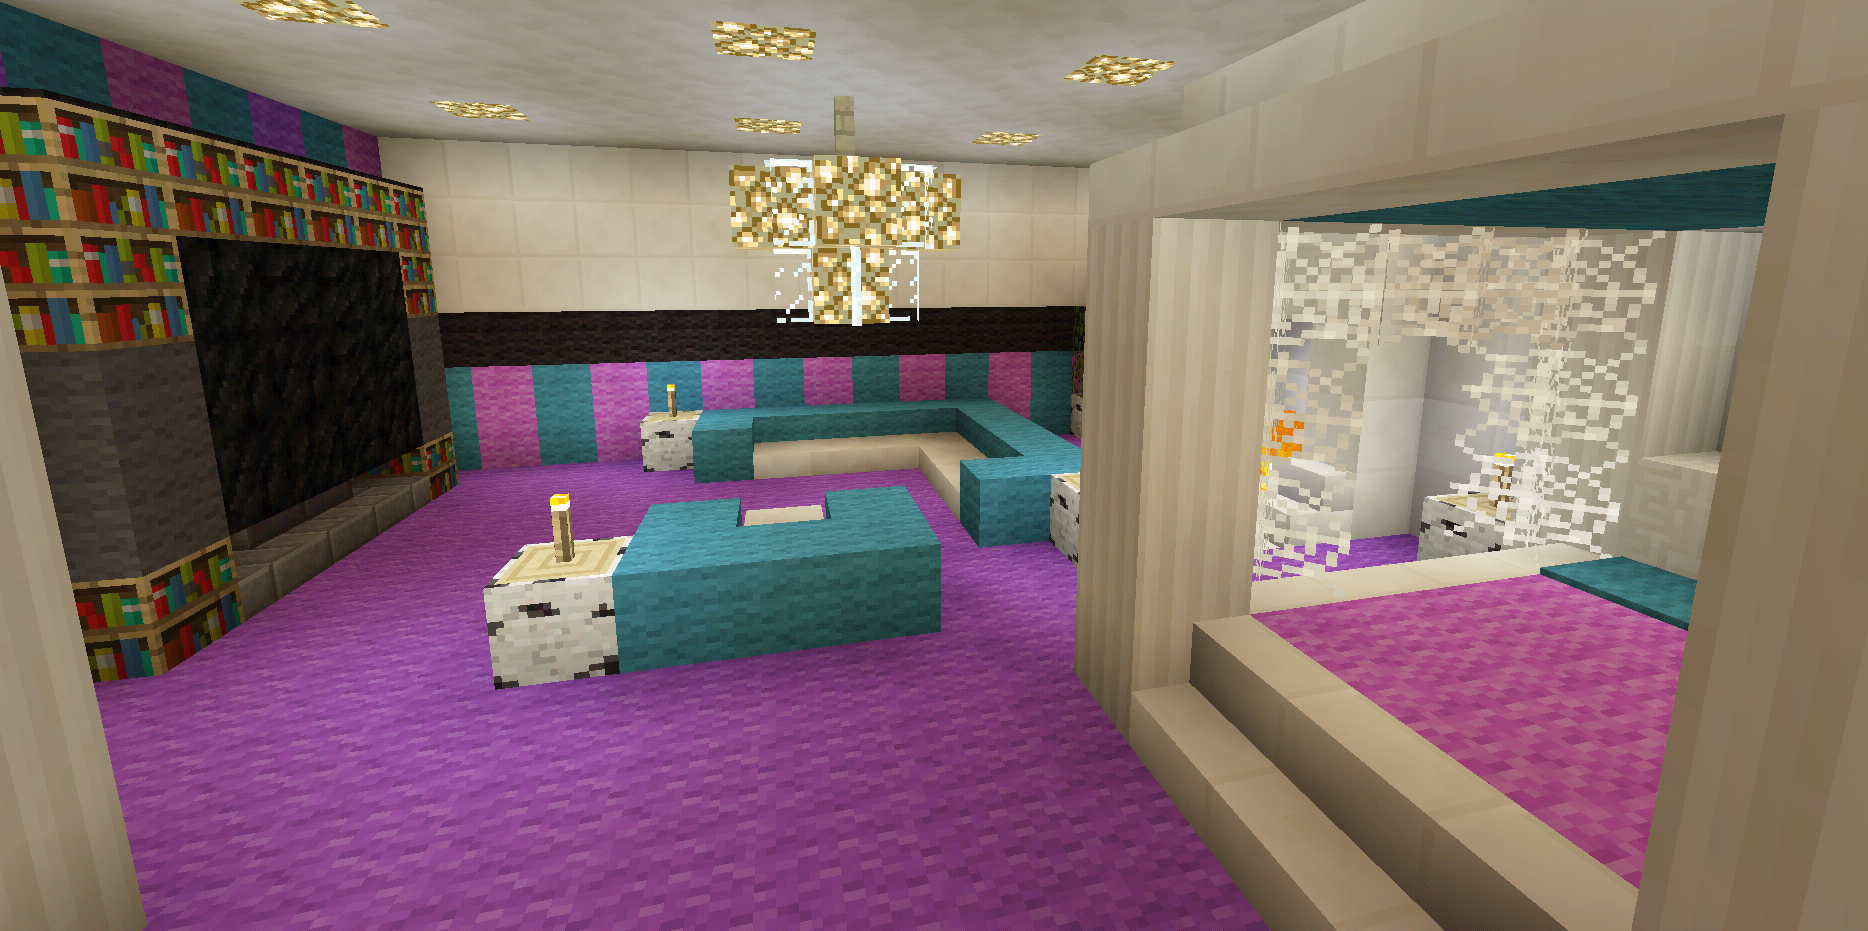 Minecraft Bedroom Pink Girl Purple Wallpaper Wall Design Canopy Bed TV Mine